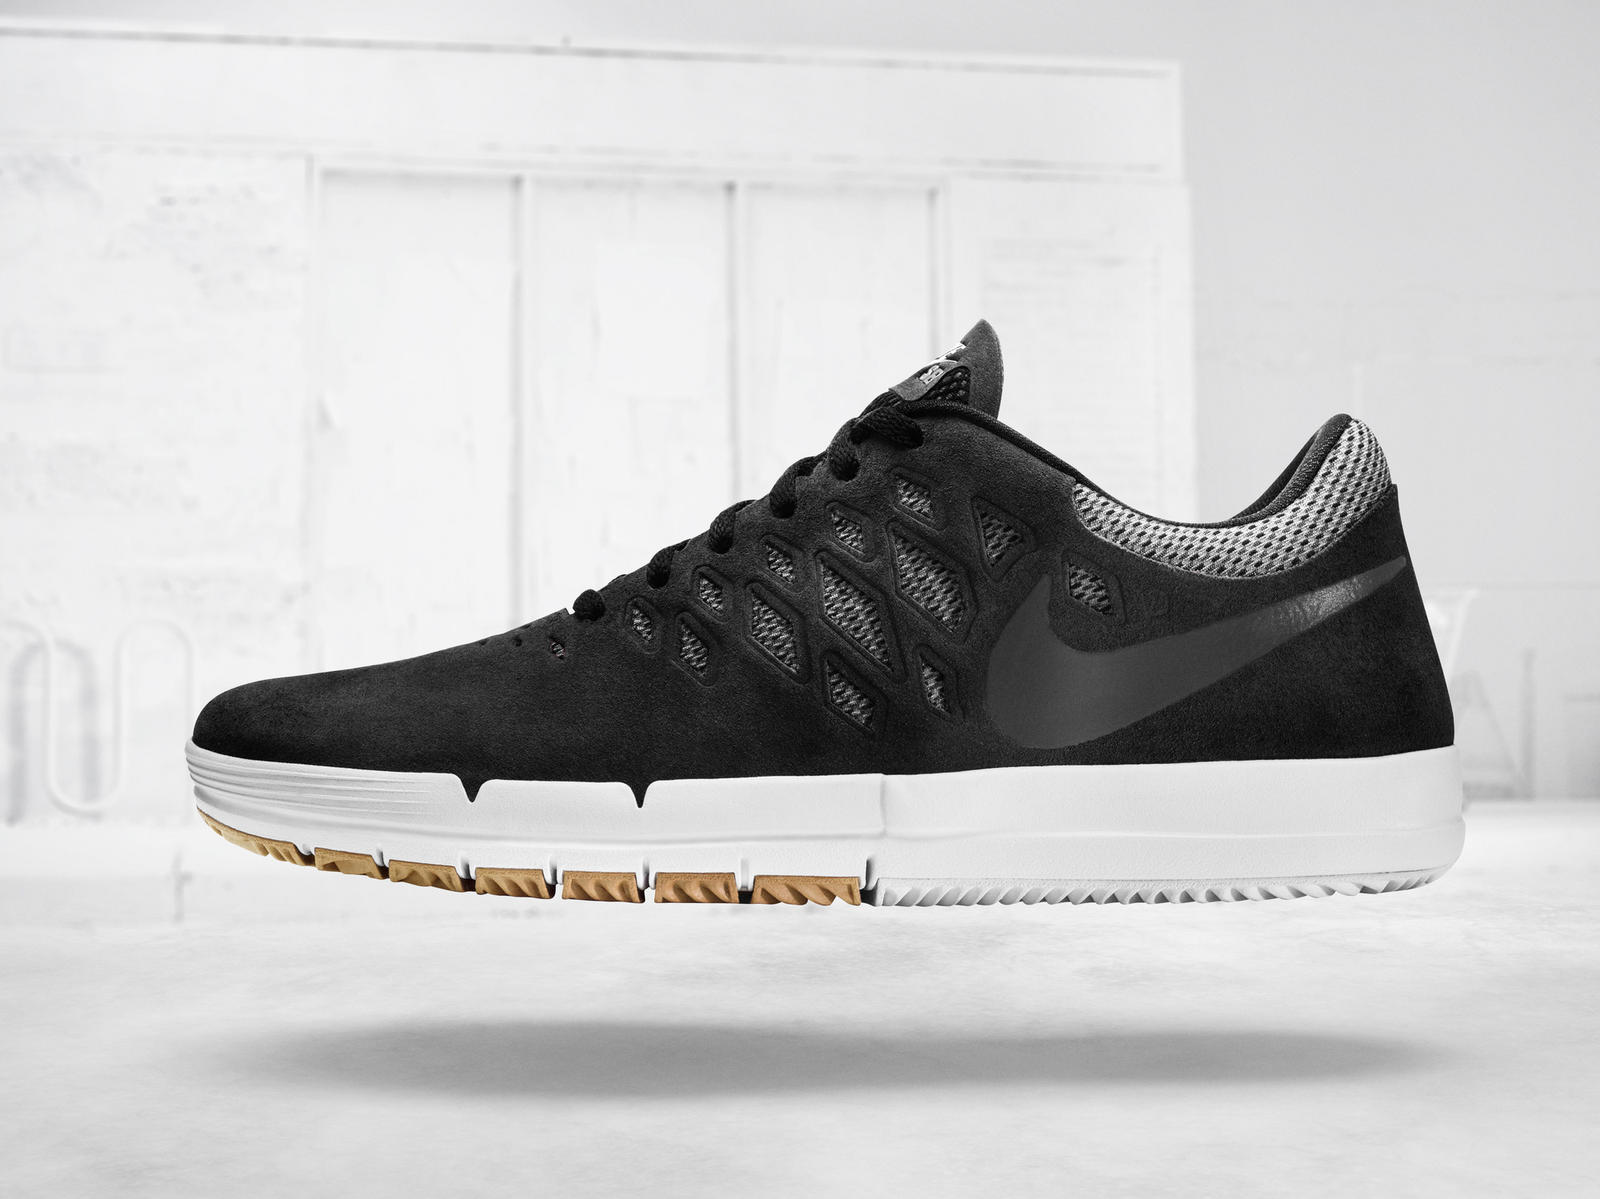 nike sb debuts first skate shoe with nike free nike news. Black Bedroom Furniture Sets. Home Design Ideas